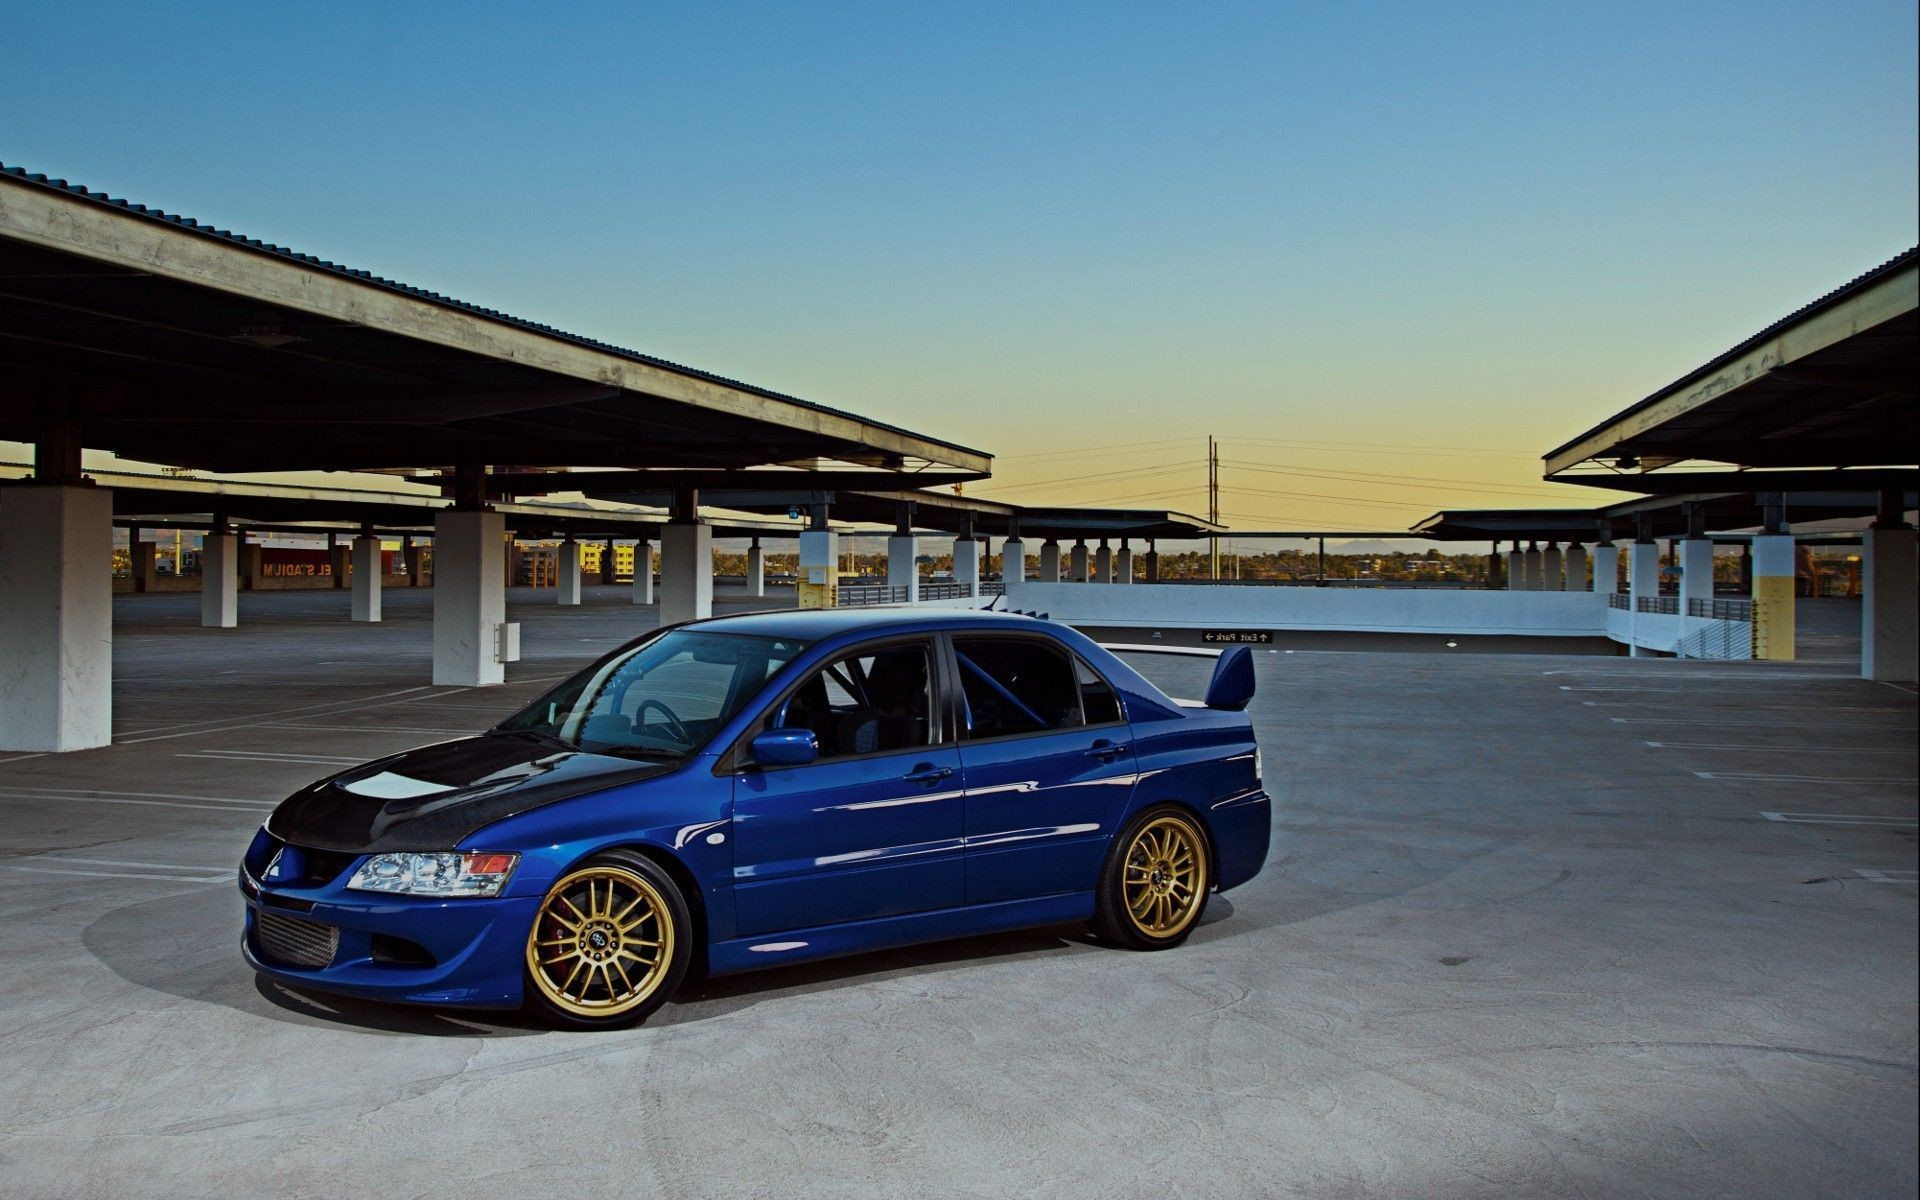 HD Wallpapers Mitsubishi Lancer Evo : Car Wallpapers HD.